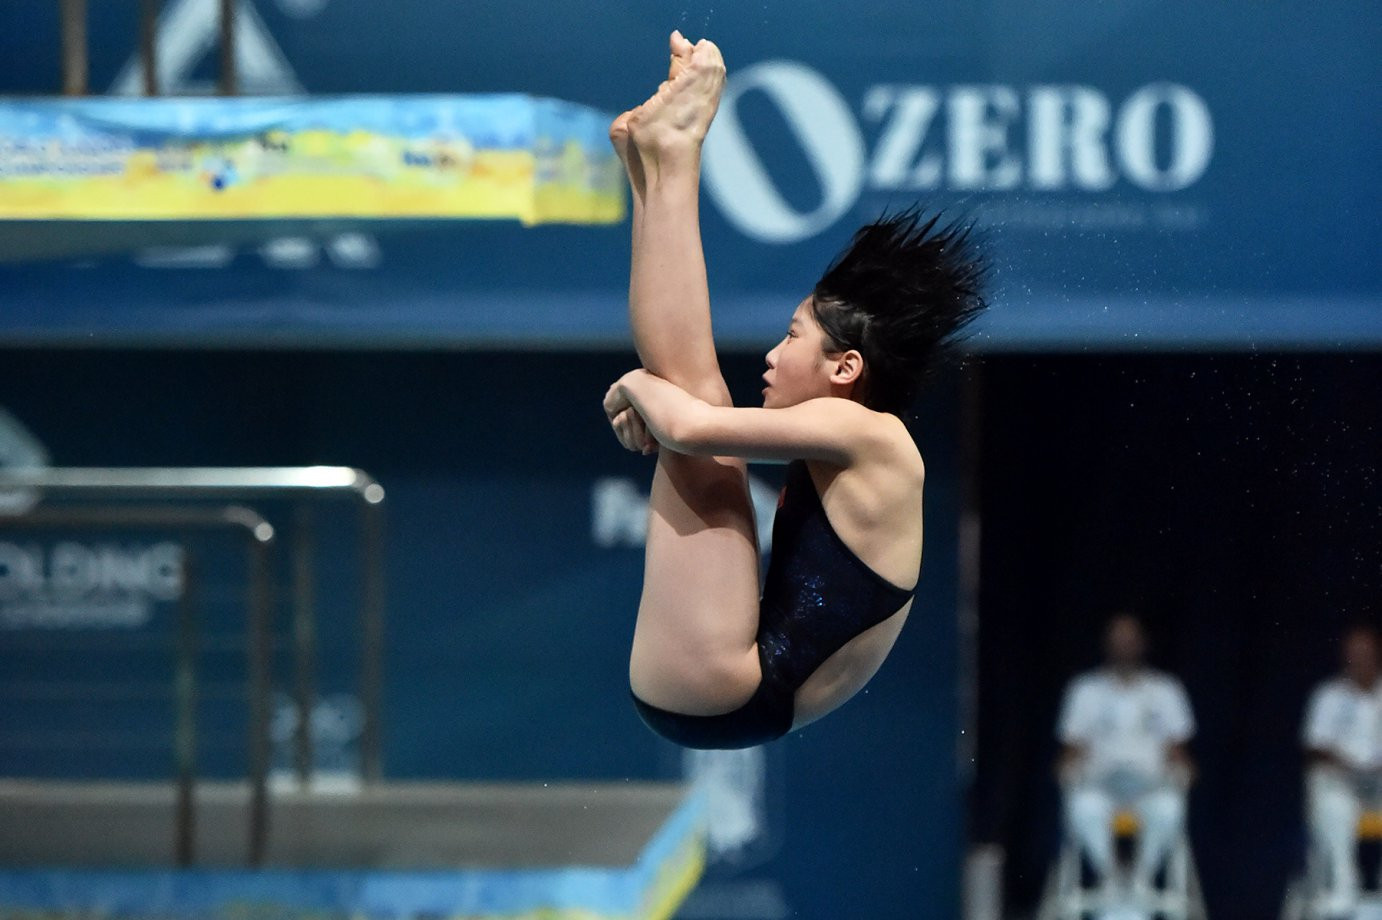 Lai Shiyun secured victory in the 3m springboard for China on the penultimate day of the FINA World Junior Diving Championships in Kiev taking her country's overall total of gold medals to 12 ©FINA